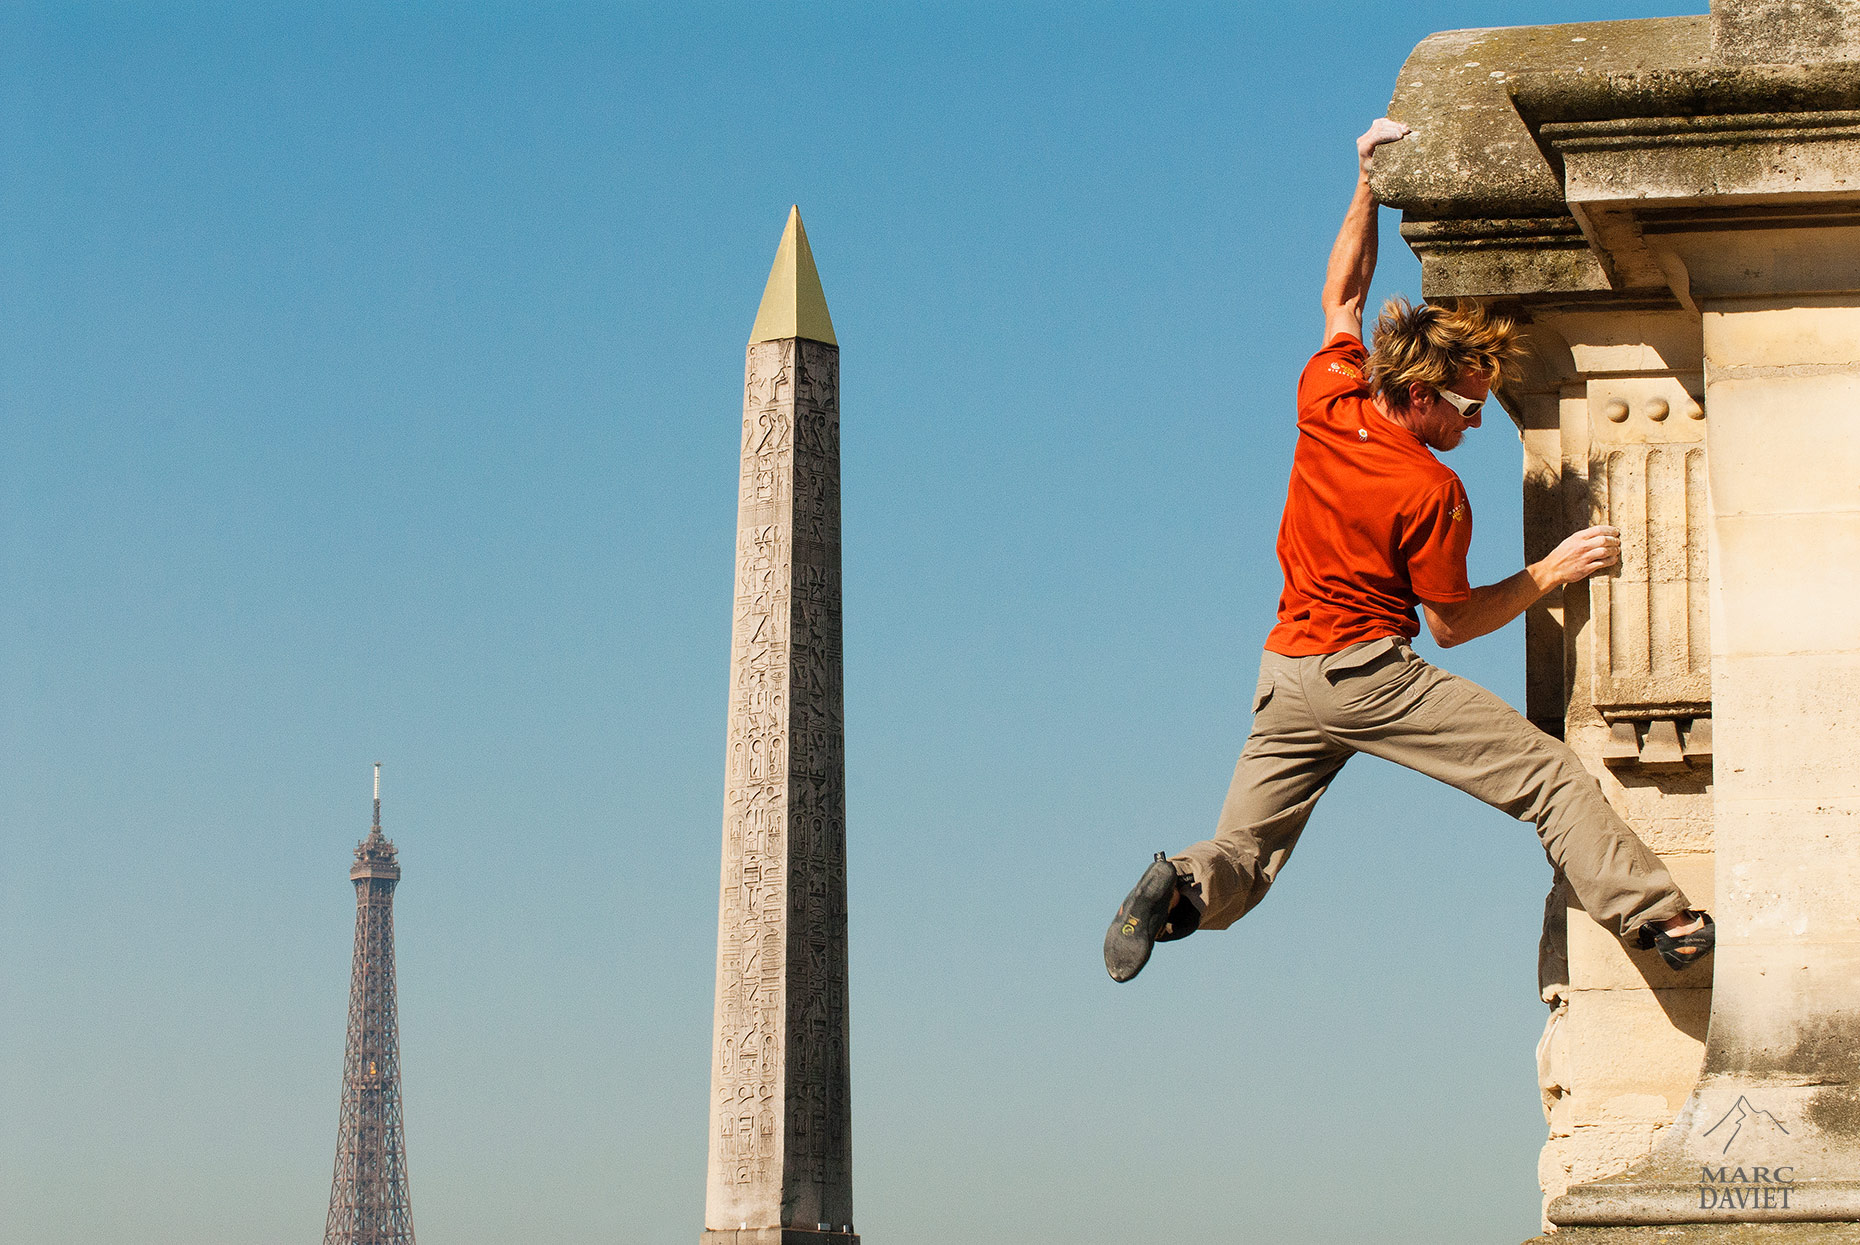 Street Climbing - Paris - Marc Daviet Photography